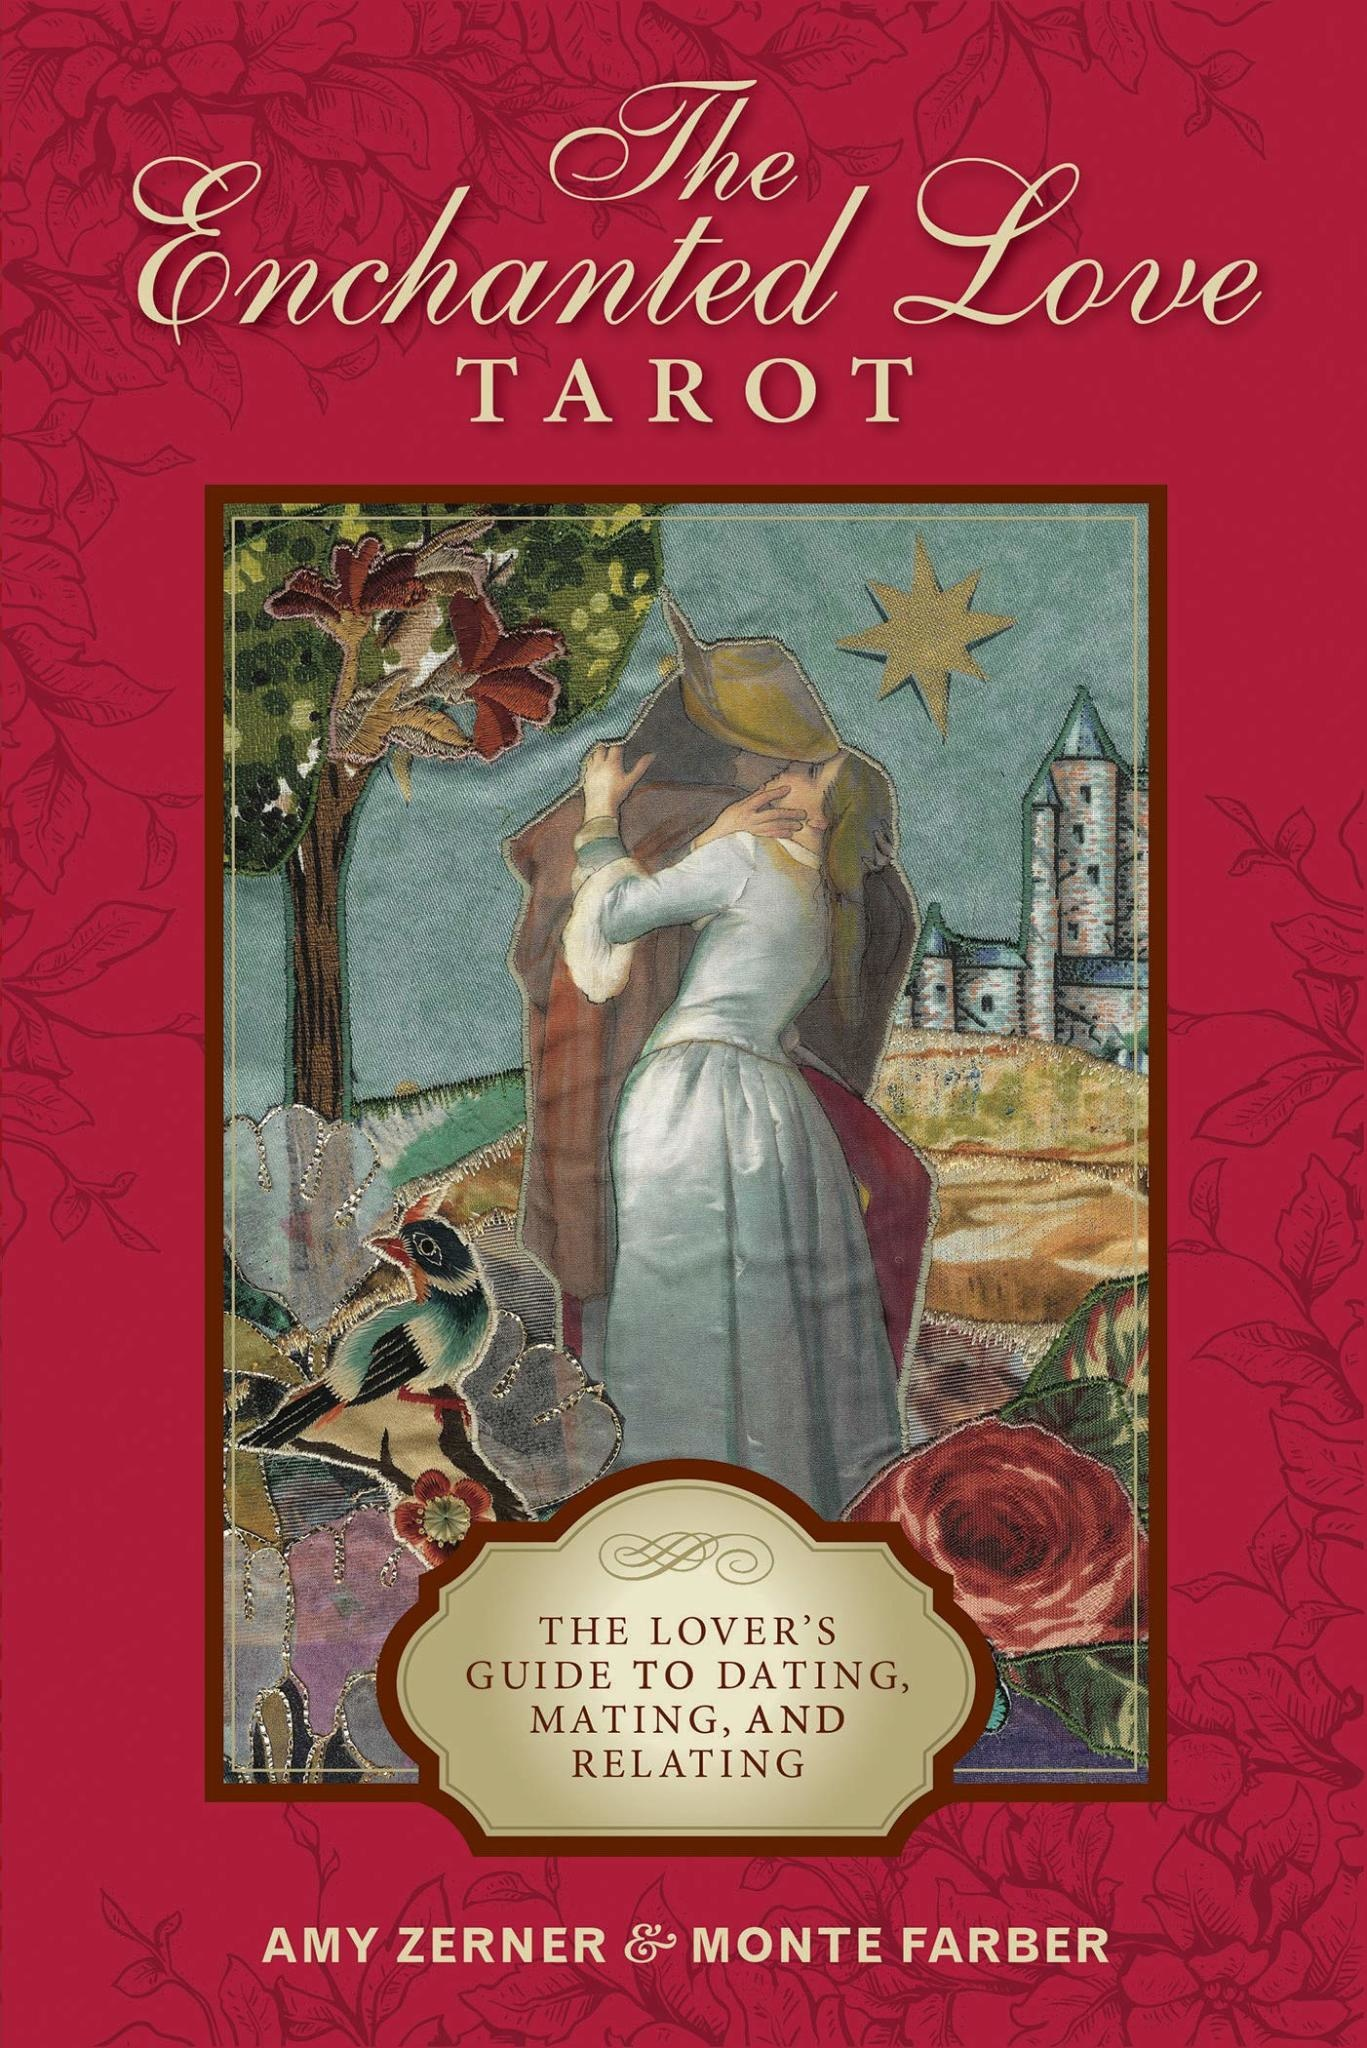 deck enchanted love tarot the lover's guide to dating